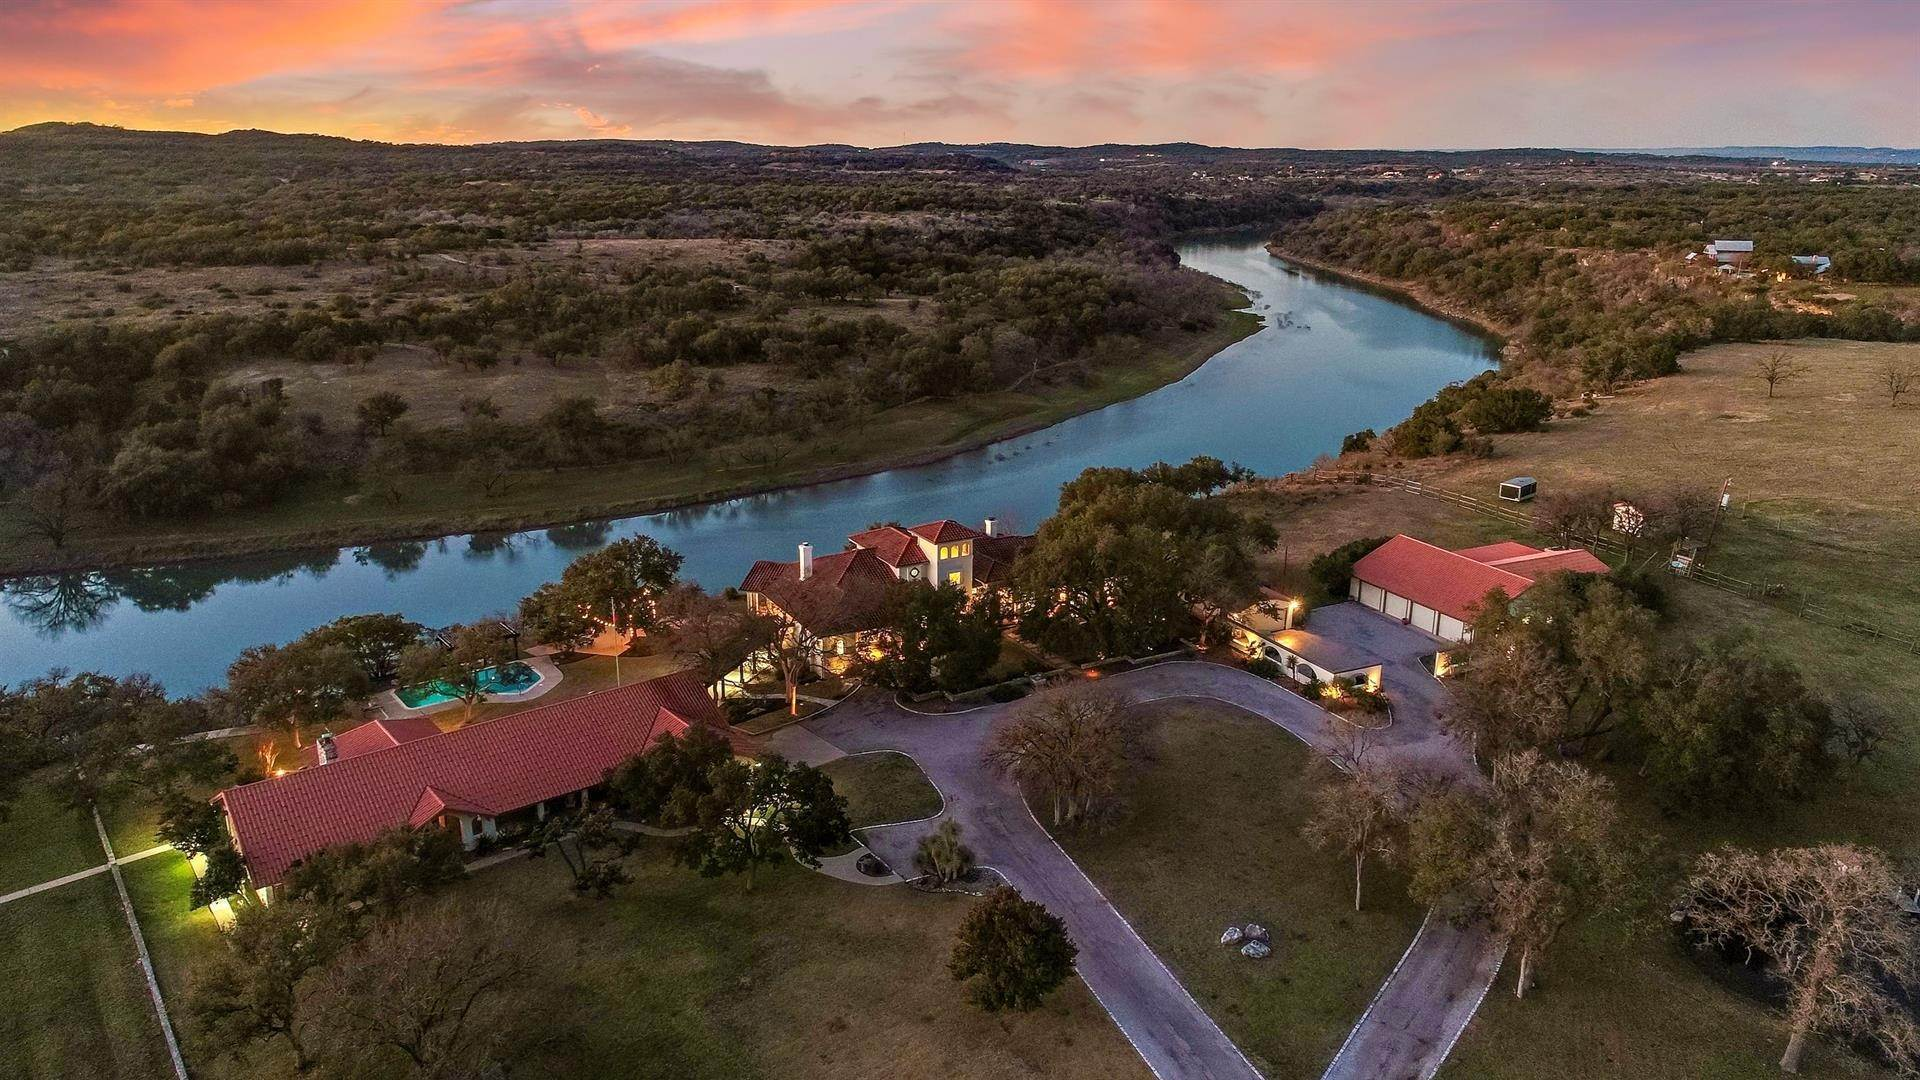 Residential at 24207 Pedernales Canyon Trail 24207 Pedernales Canyon Trail Austin, Texas 78669 United States